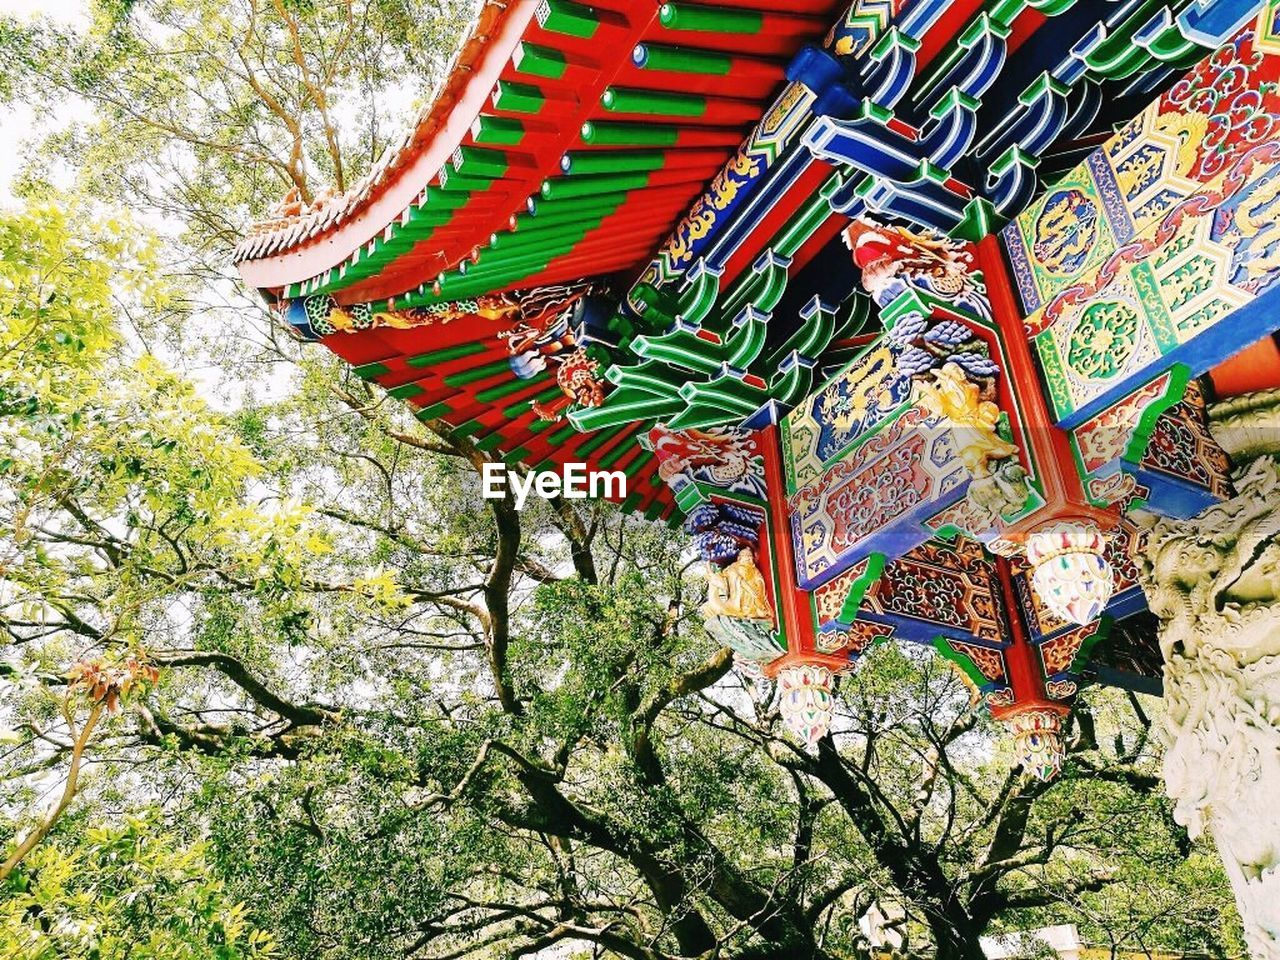 tree, low angle view, multi colored, day, no people, green color, outdoors, branch, roof, nature, architecture, beauty in nature, animal themes